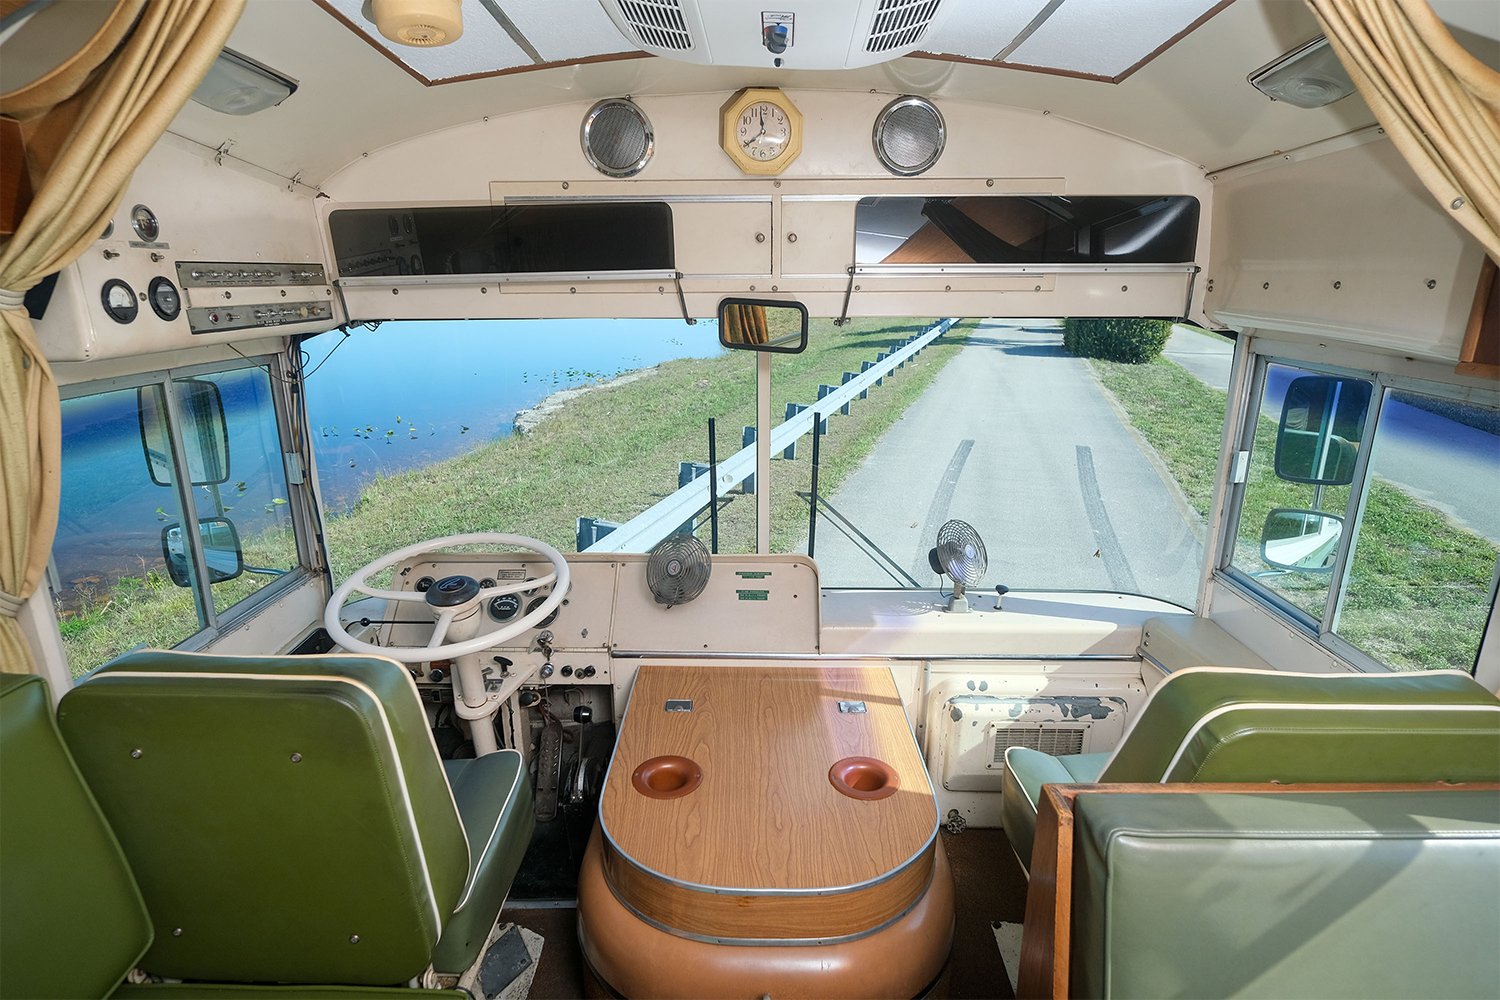 The driver's seat in a 1969 Blue Bird Wanderlodge RV